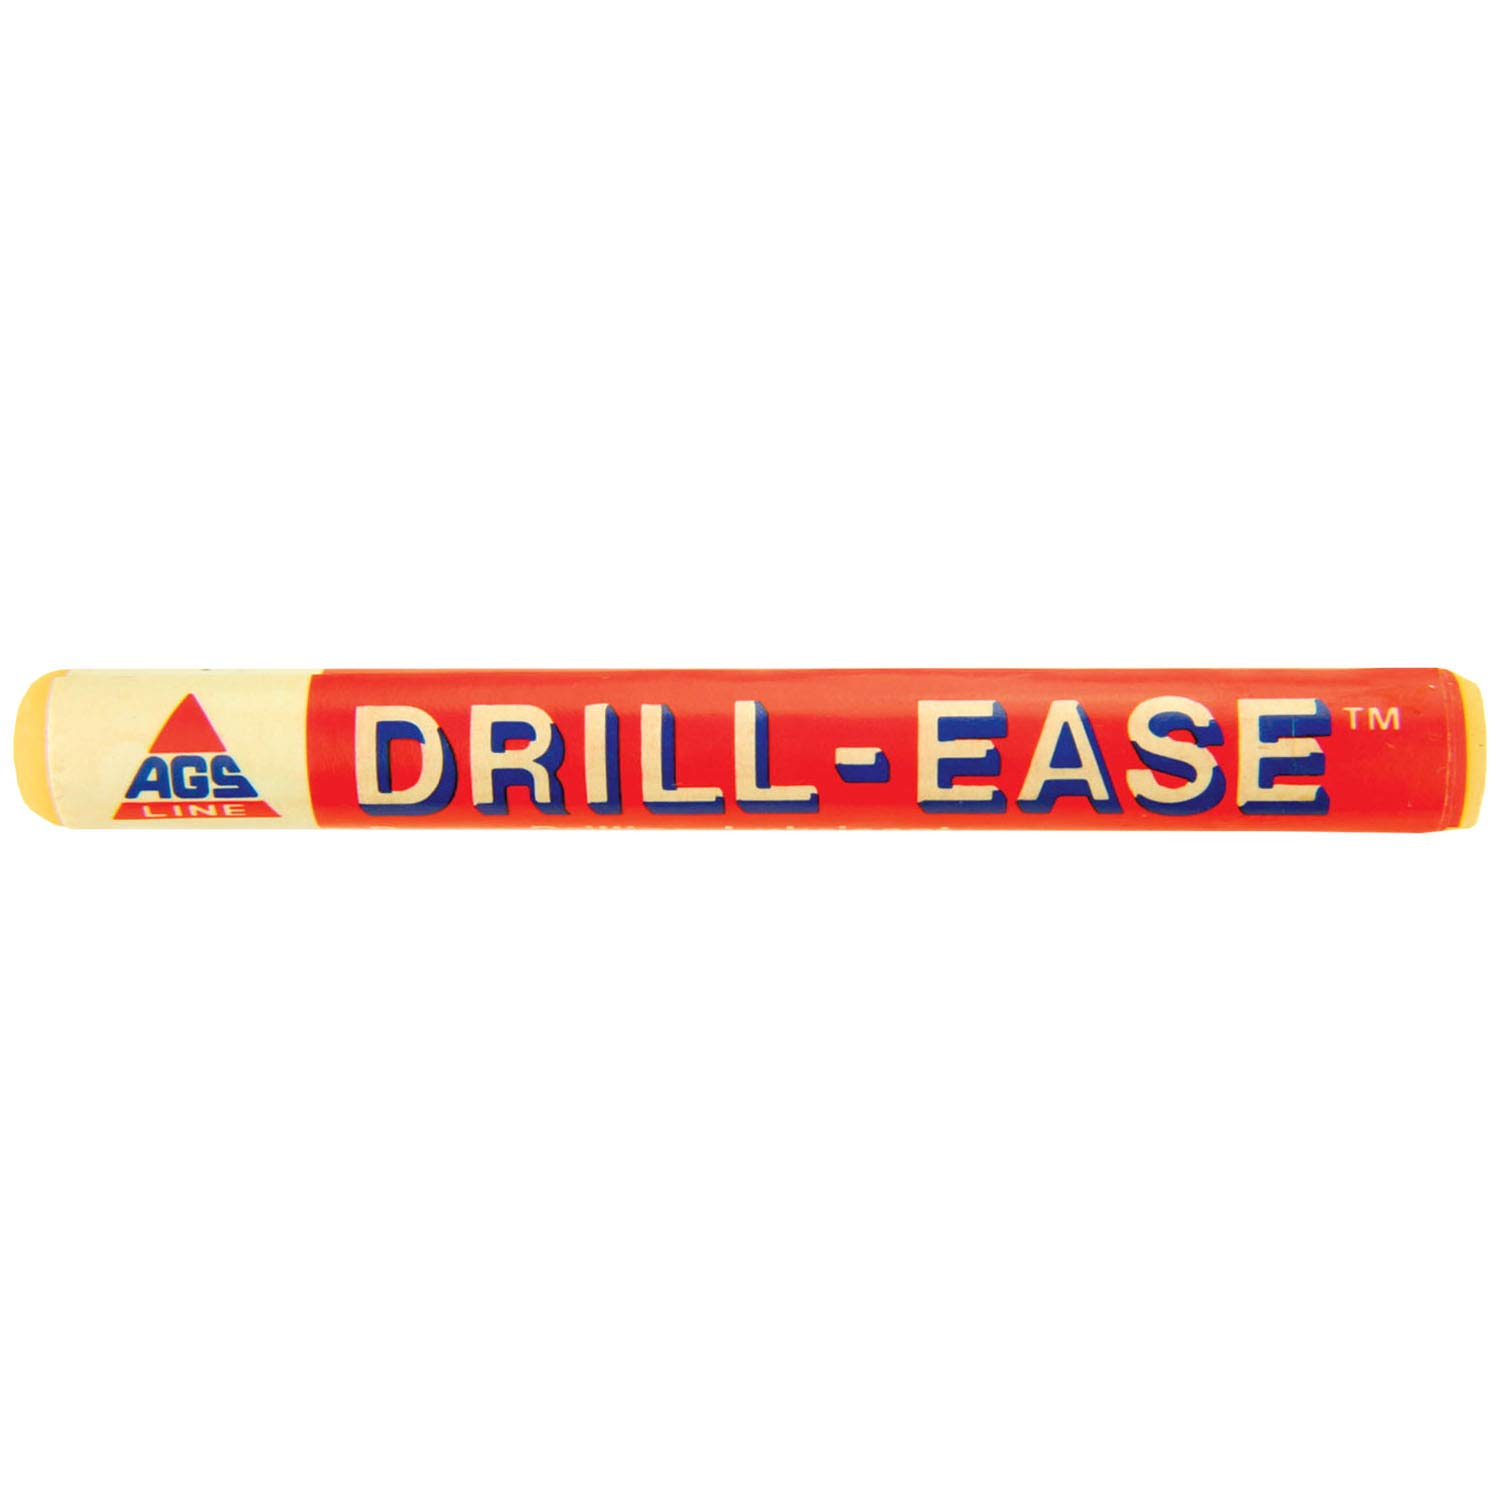 Drill-Ease Lubricant,Stick.43 oz